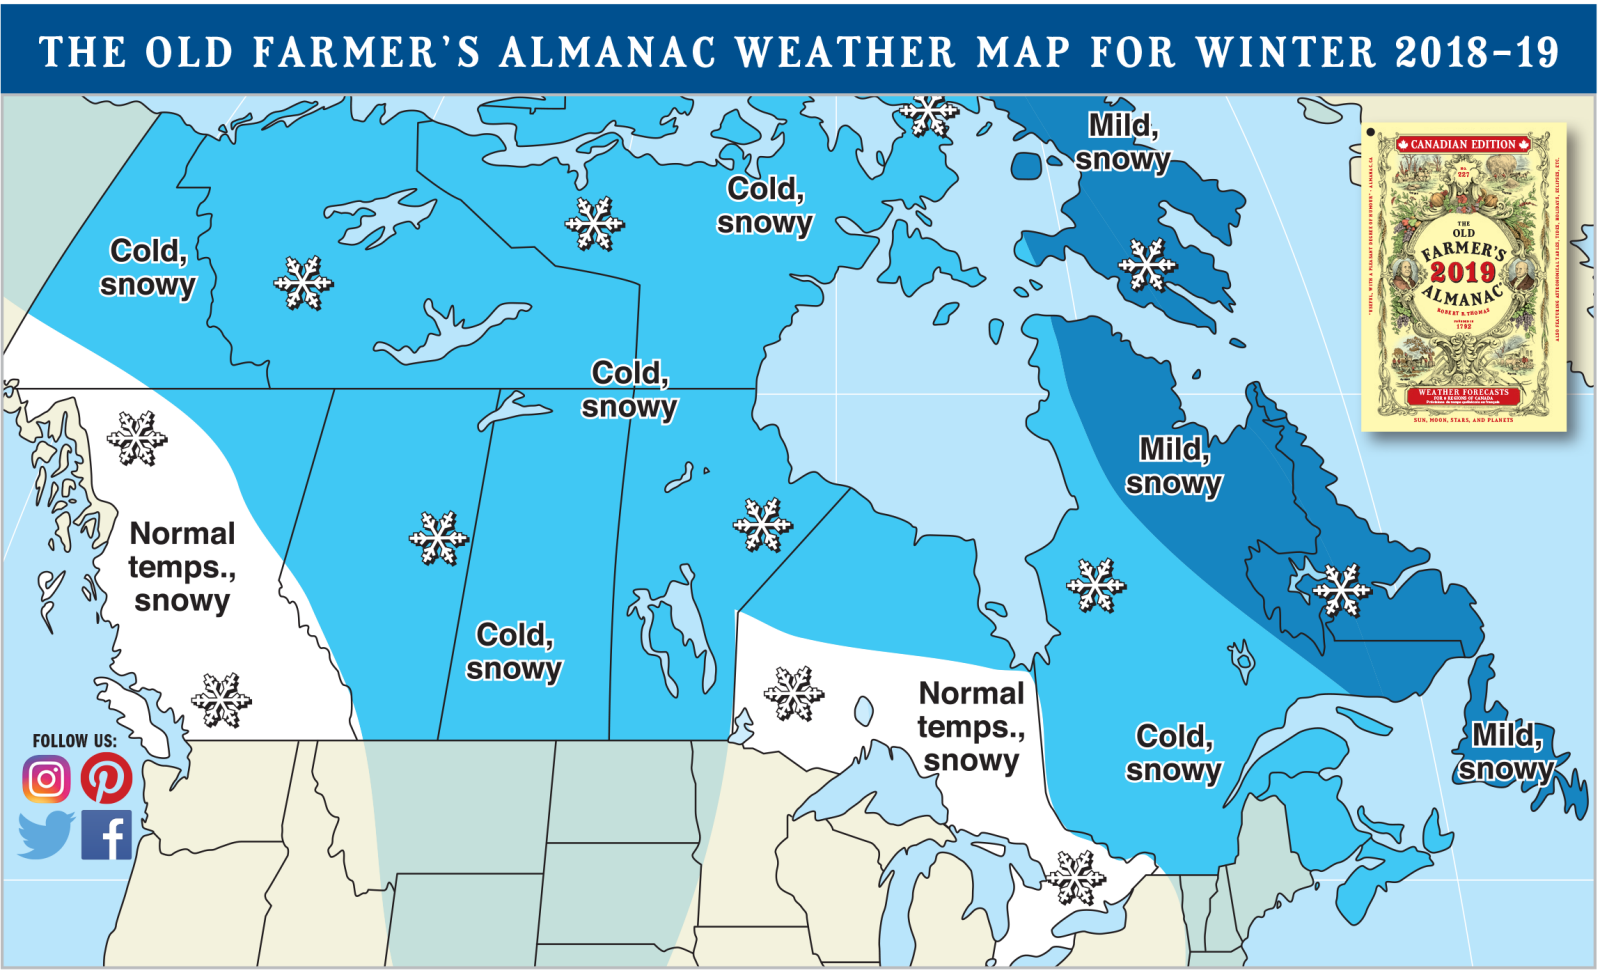 Will the winter be cold in 2018-2019 52